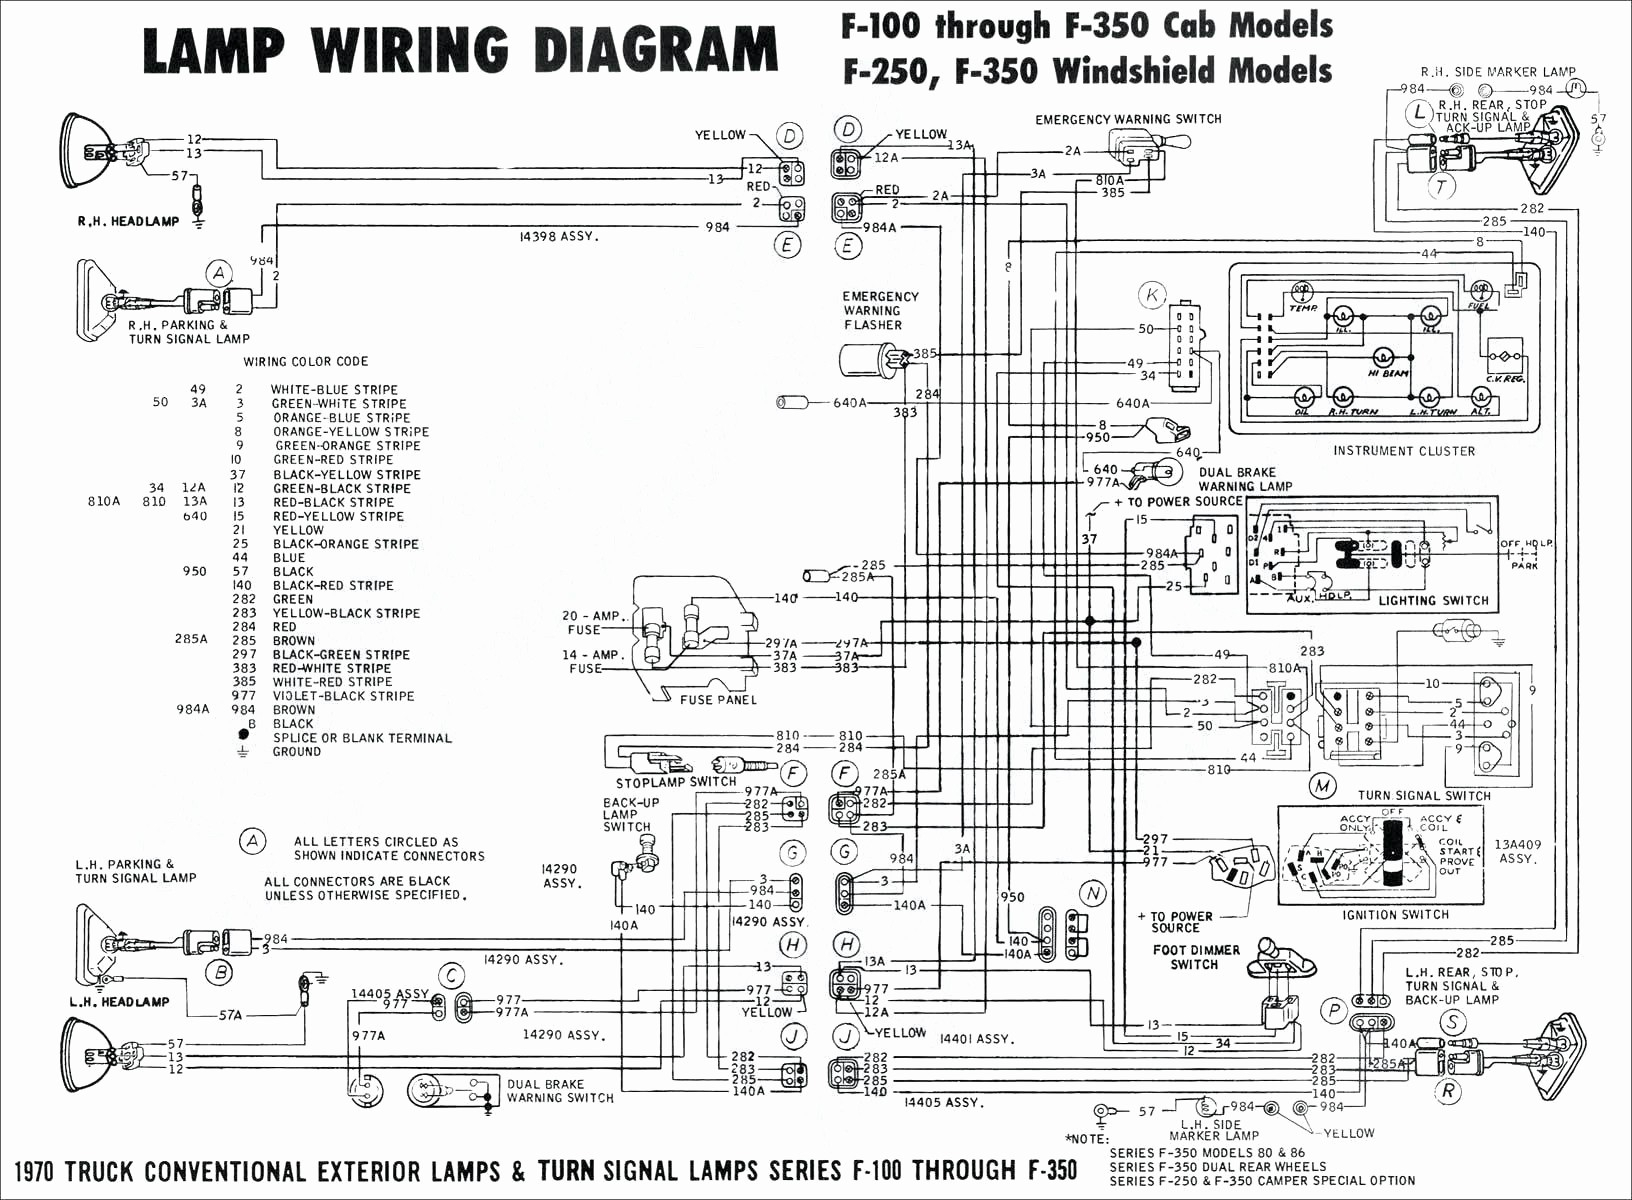 [SCHEMATICS_4LK]  D19 2106 Ford Headlight Wiring Diagram | Wiring Resources | 2106 Ford Headlight Wiring Diagram |  | Wiring Resources